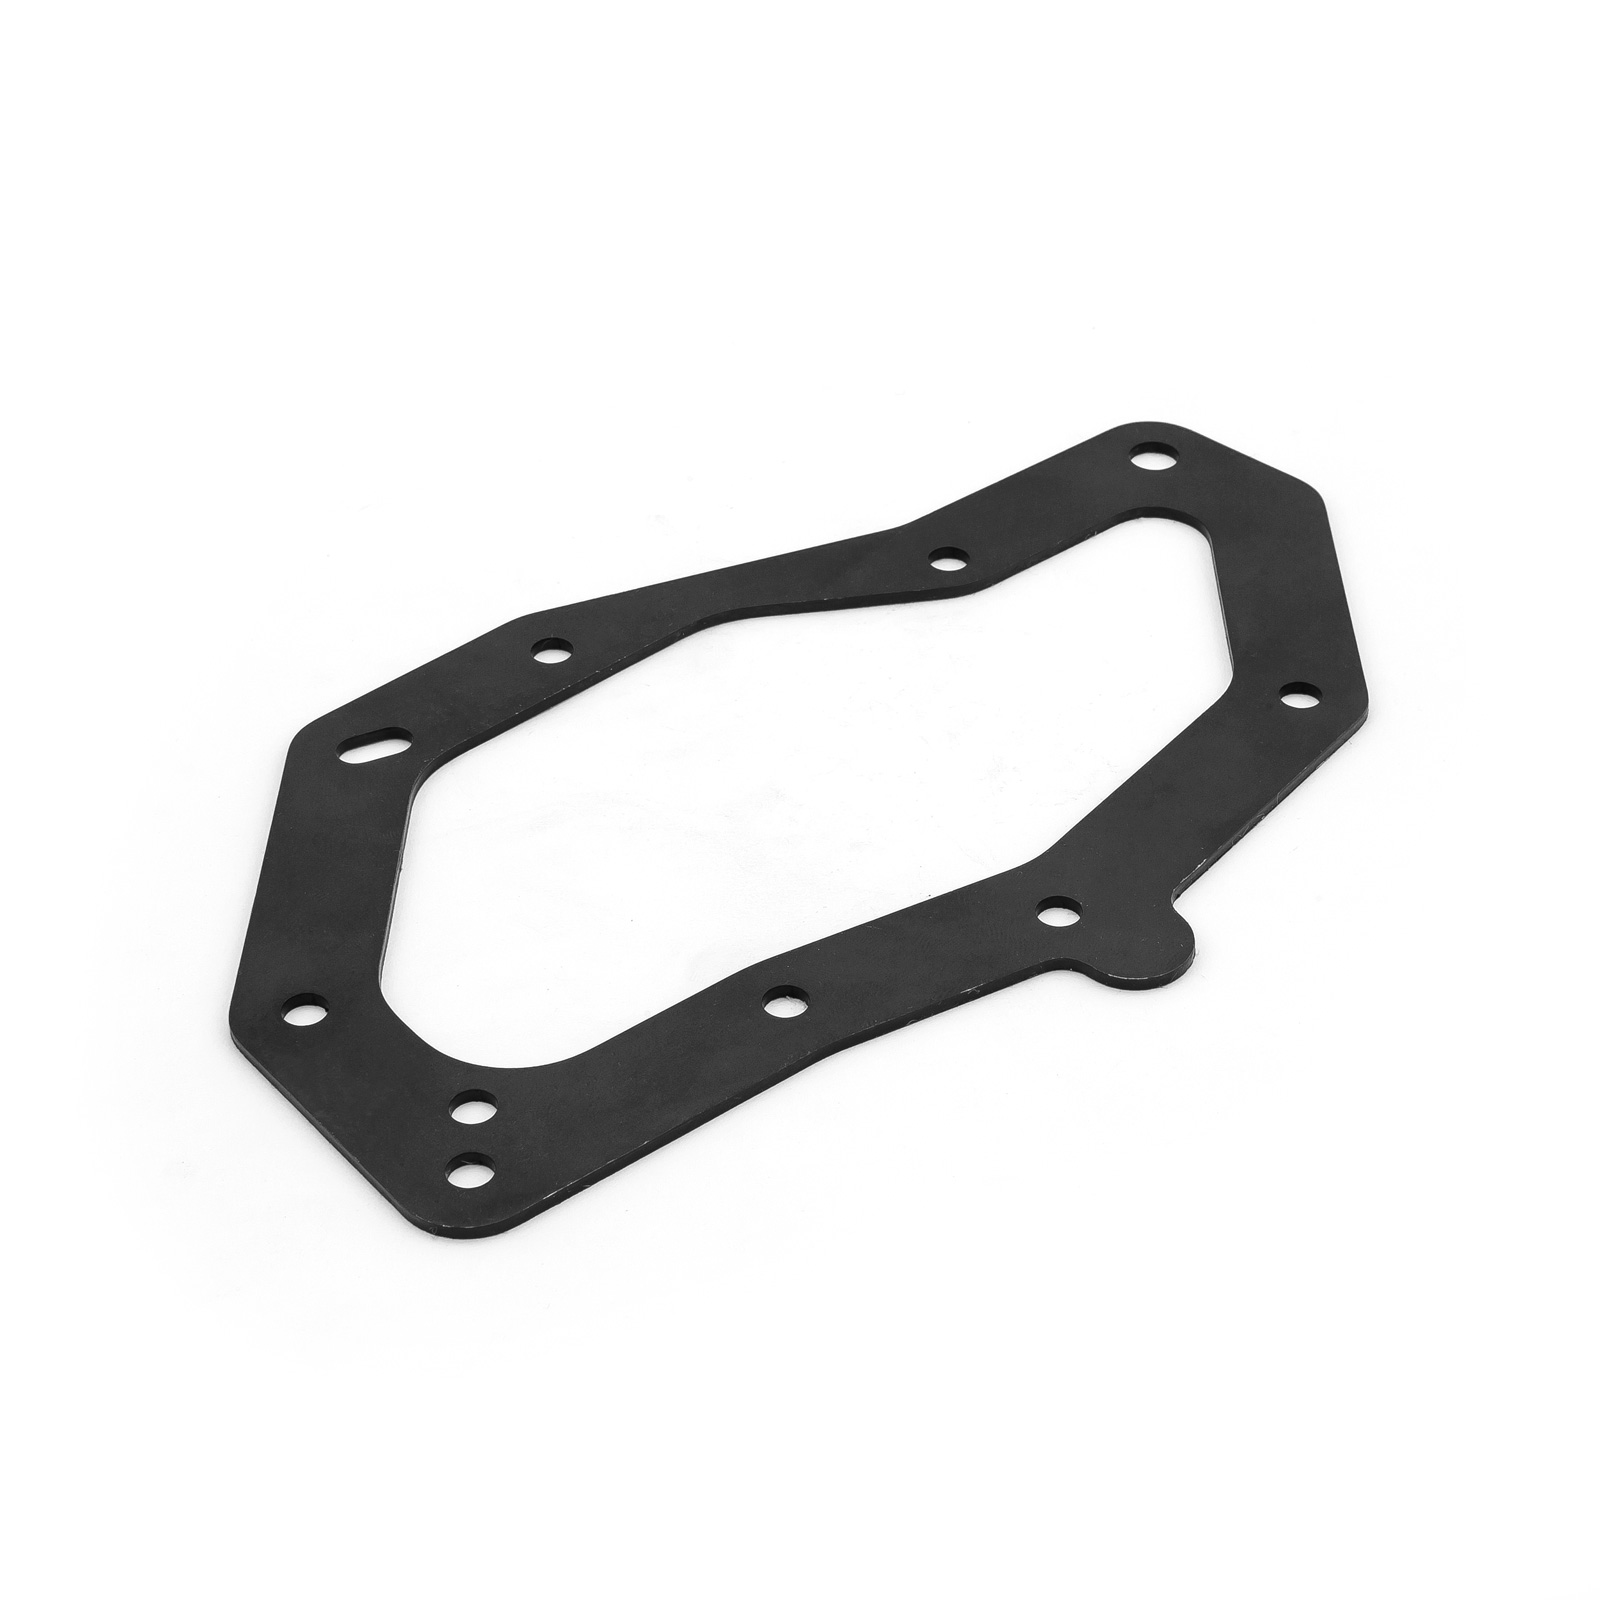 Ford C4 Transmission Filter Gasket 2mm Thick